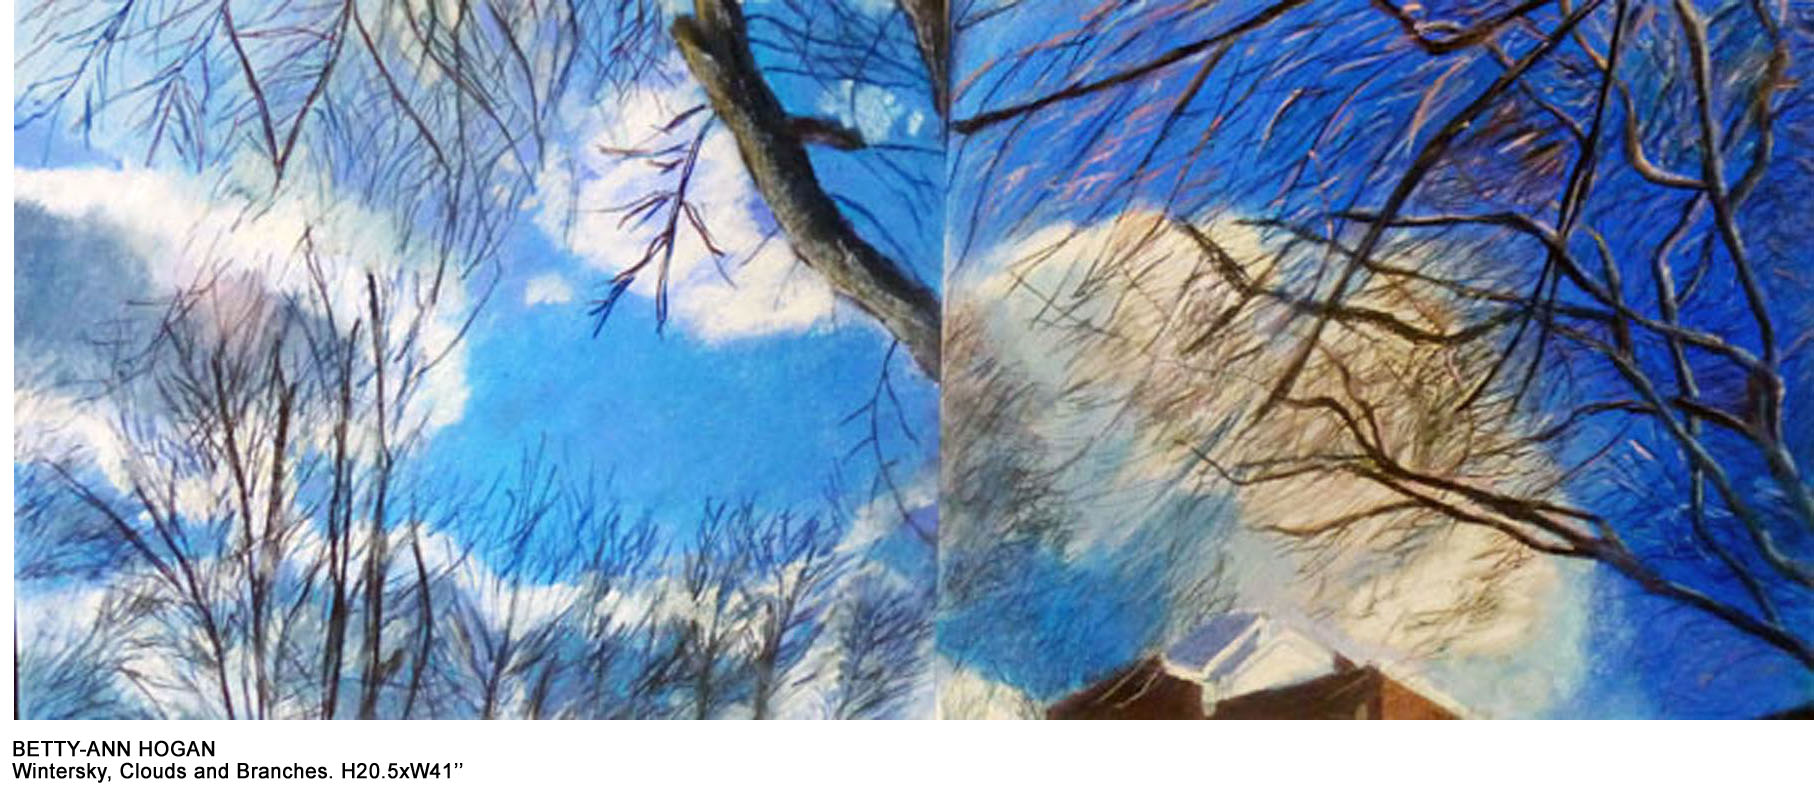 Bettyannhogan-2-Wintersky.Clouds.and.Branches-H20.5W41.jpg